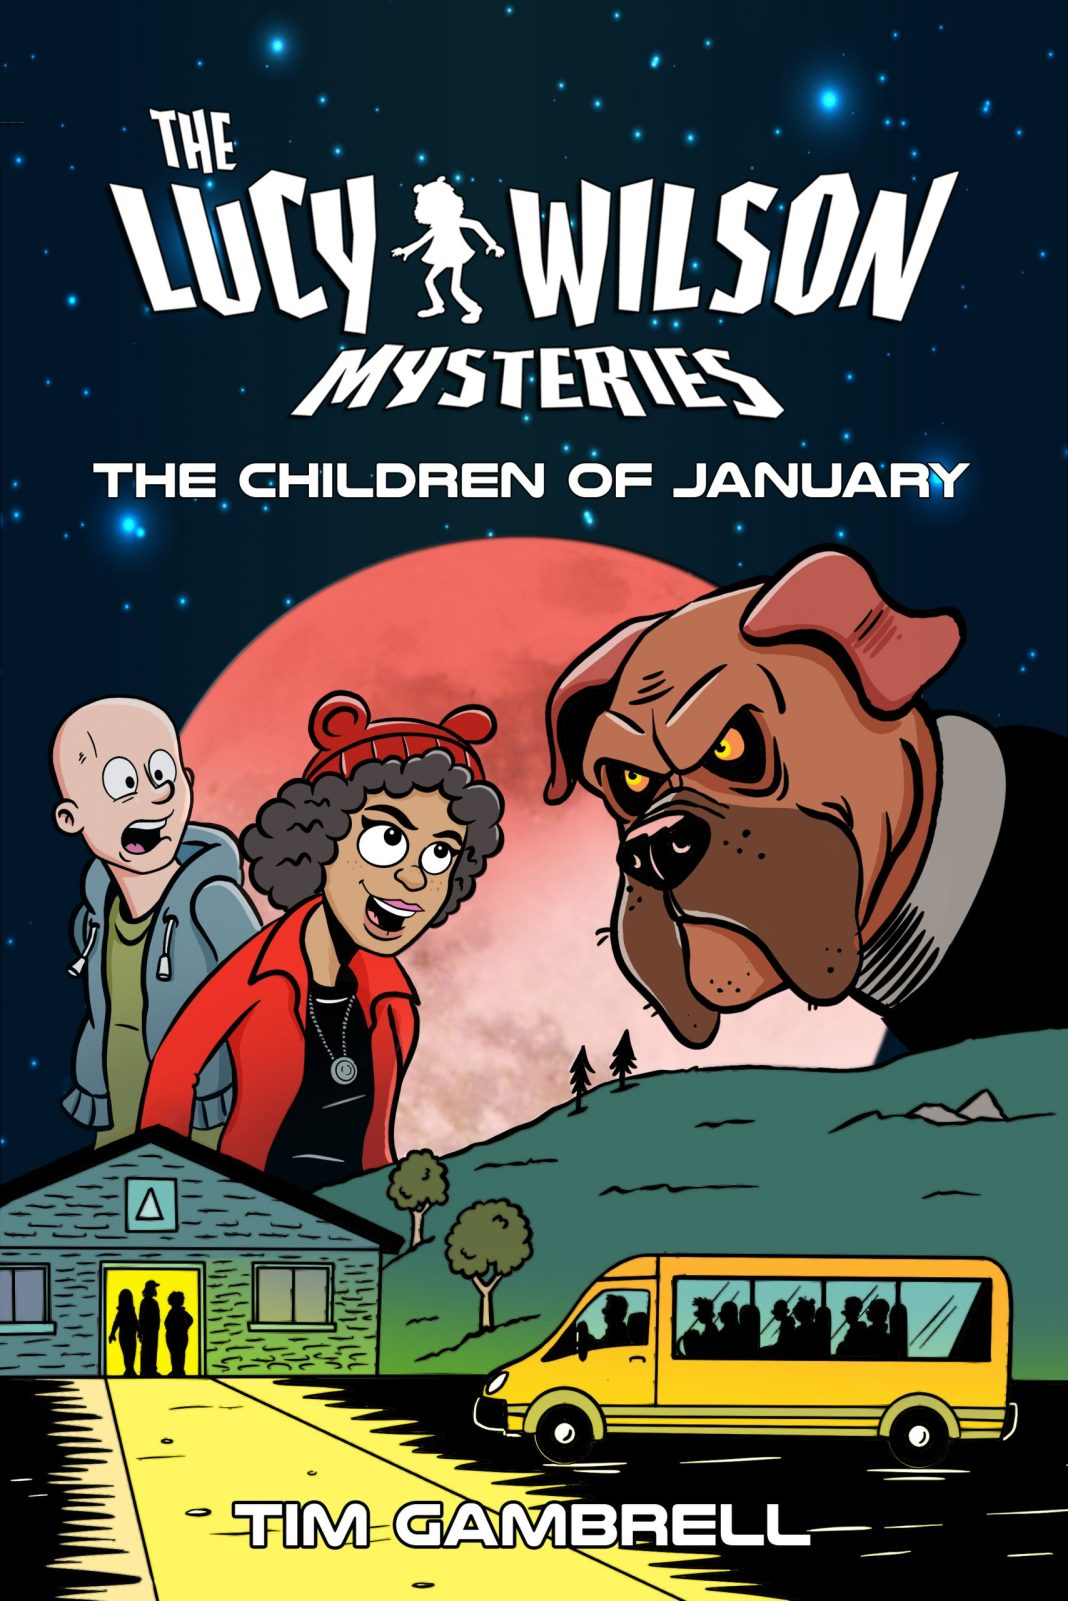 The Lucy Wilson Mysteries: The Children of January. (c) Candy Jar Books Doctor Who Brigadier Lethbridge-Stewart